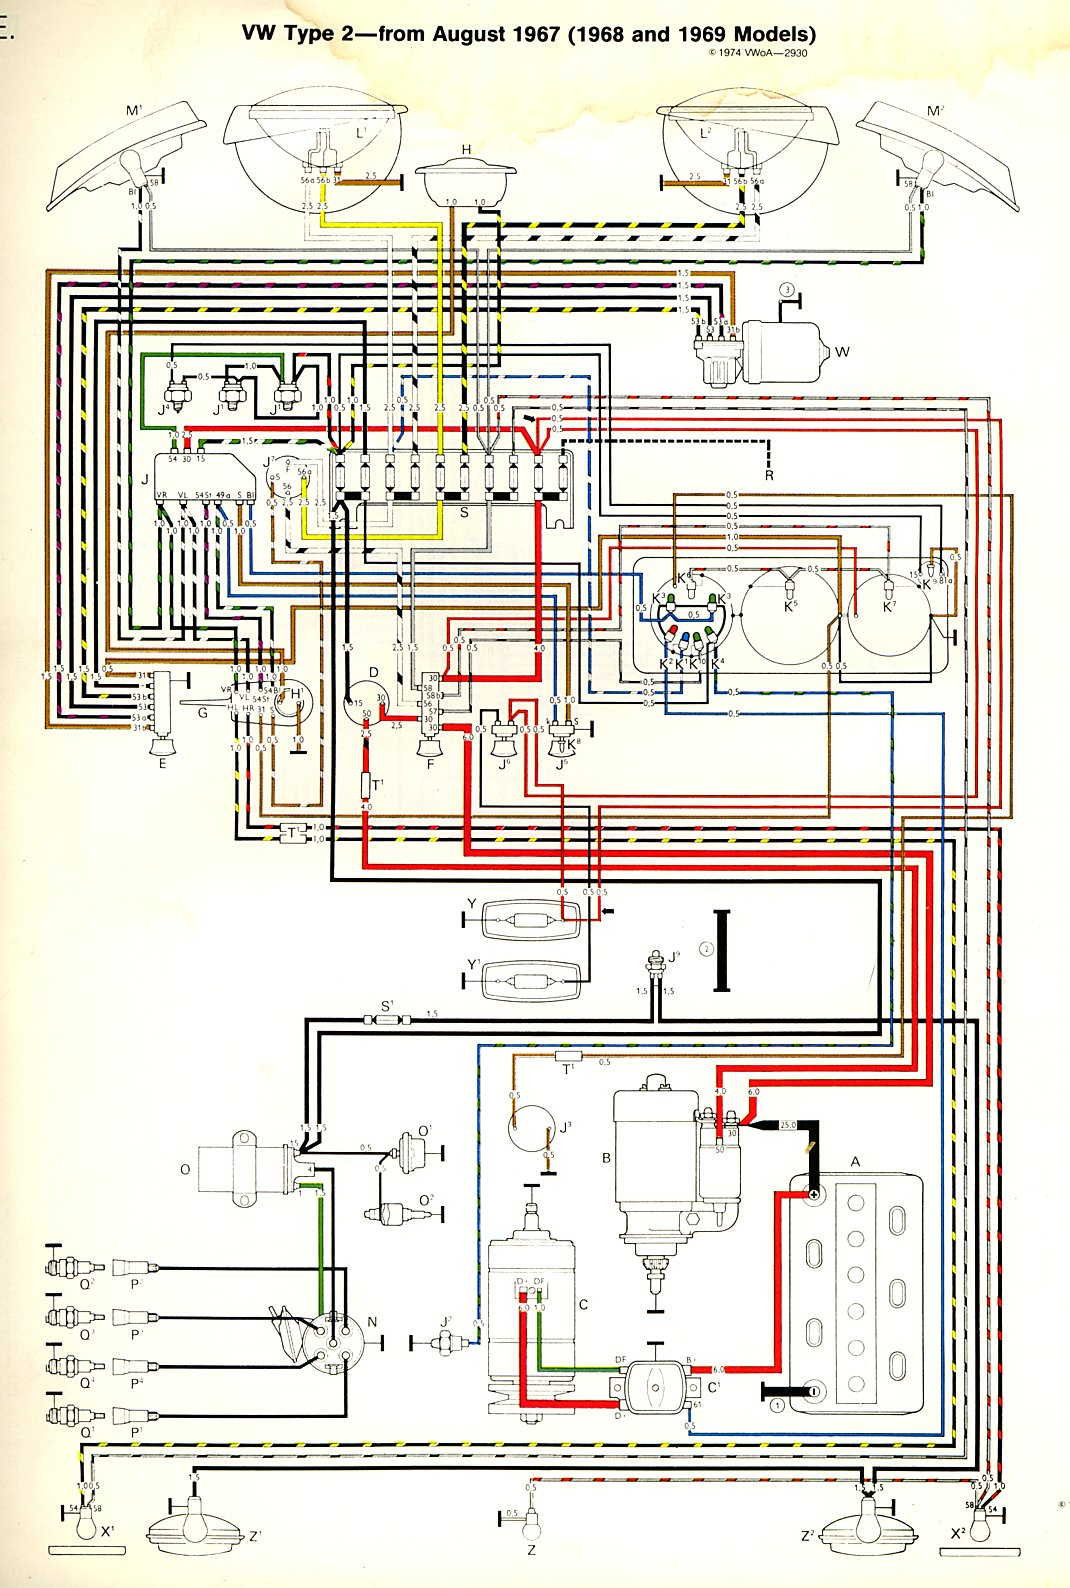 1968 69 bus wiring diagram thegoldenbug com 1960 VW Beetle Wiring Diagram 1968 69 bus wiring diagram